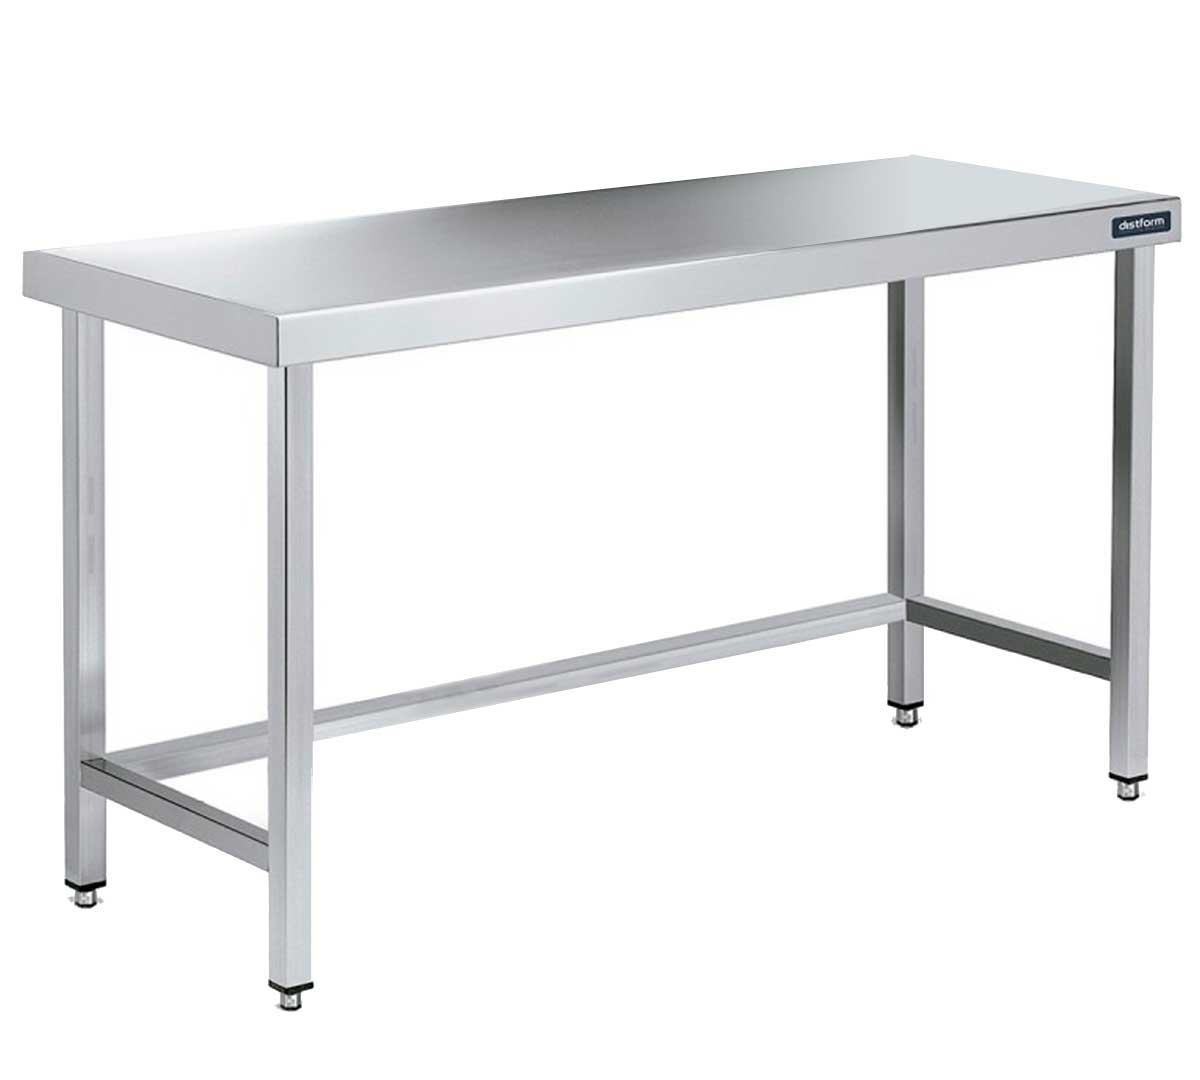 Mesa central distform gama 900 sin estantes for Estante de cocina industrial